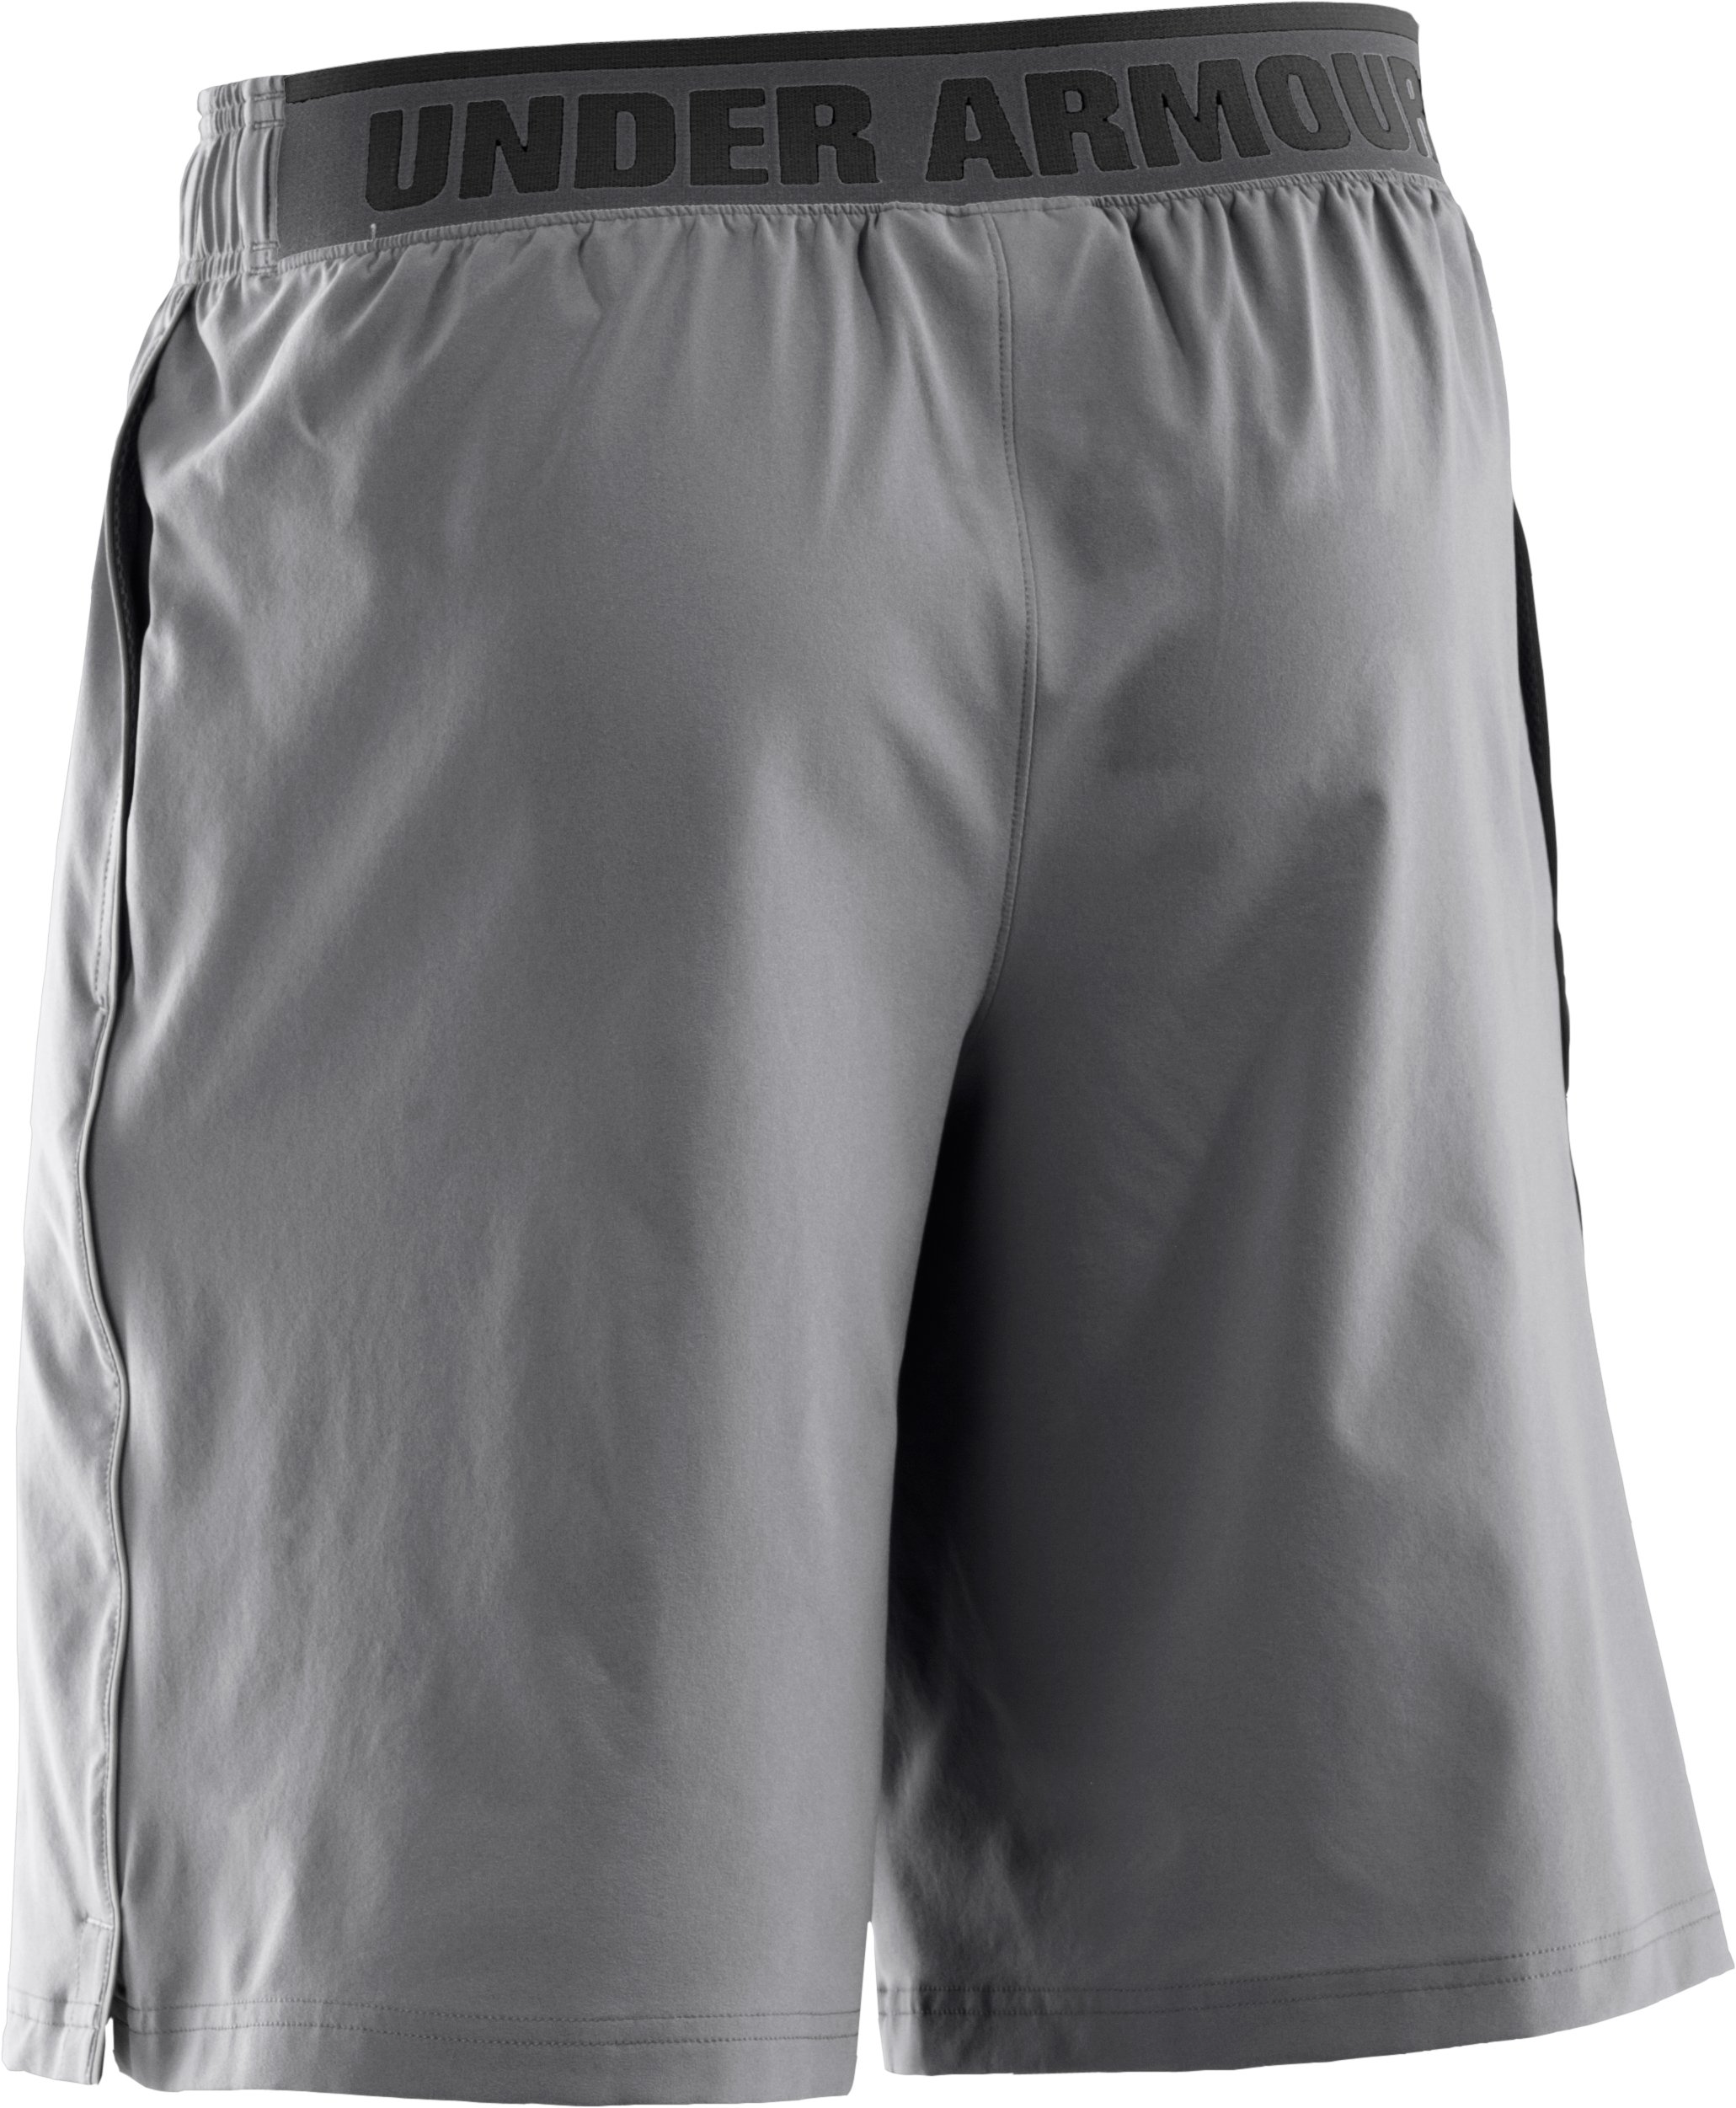 "Men's UA Mirage 10"" Shorts, Graphite"